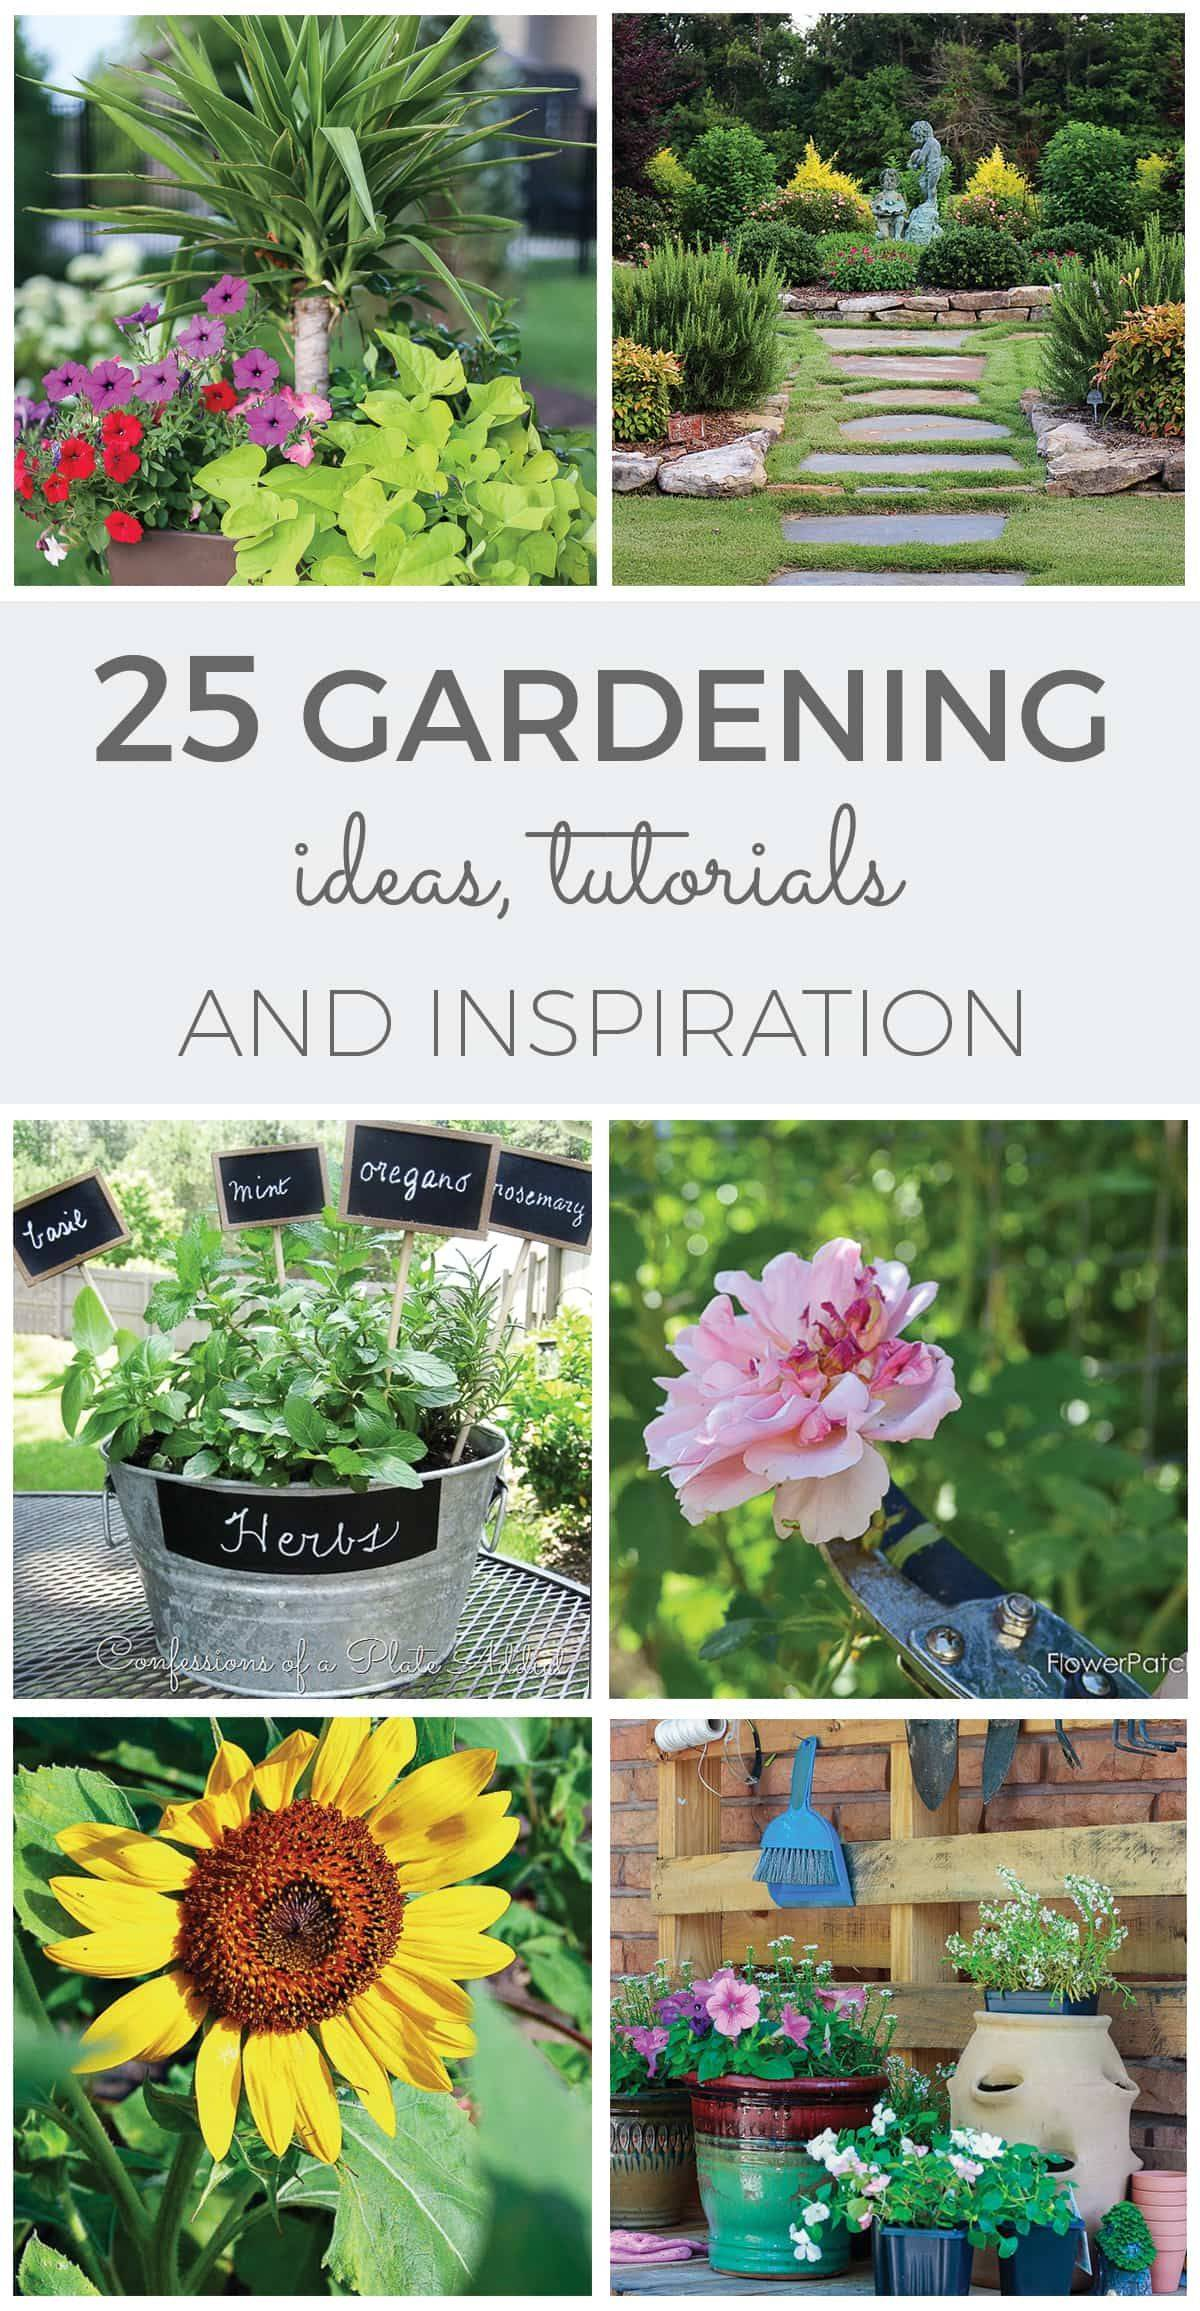 Gardening Ideas Lovely Garden Inspiration Landscape Design Tutorials and